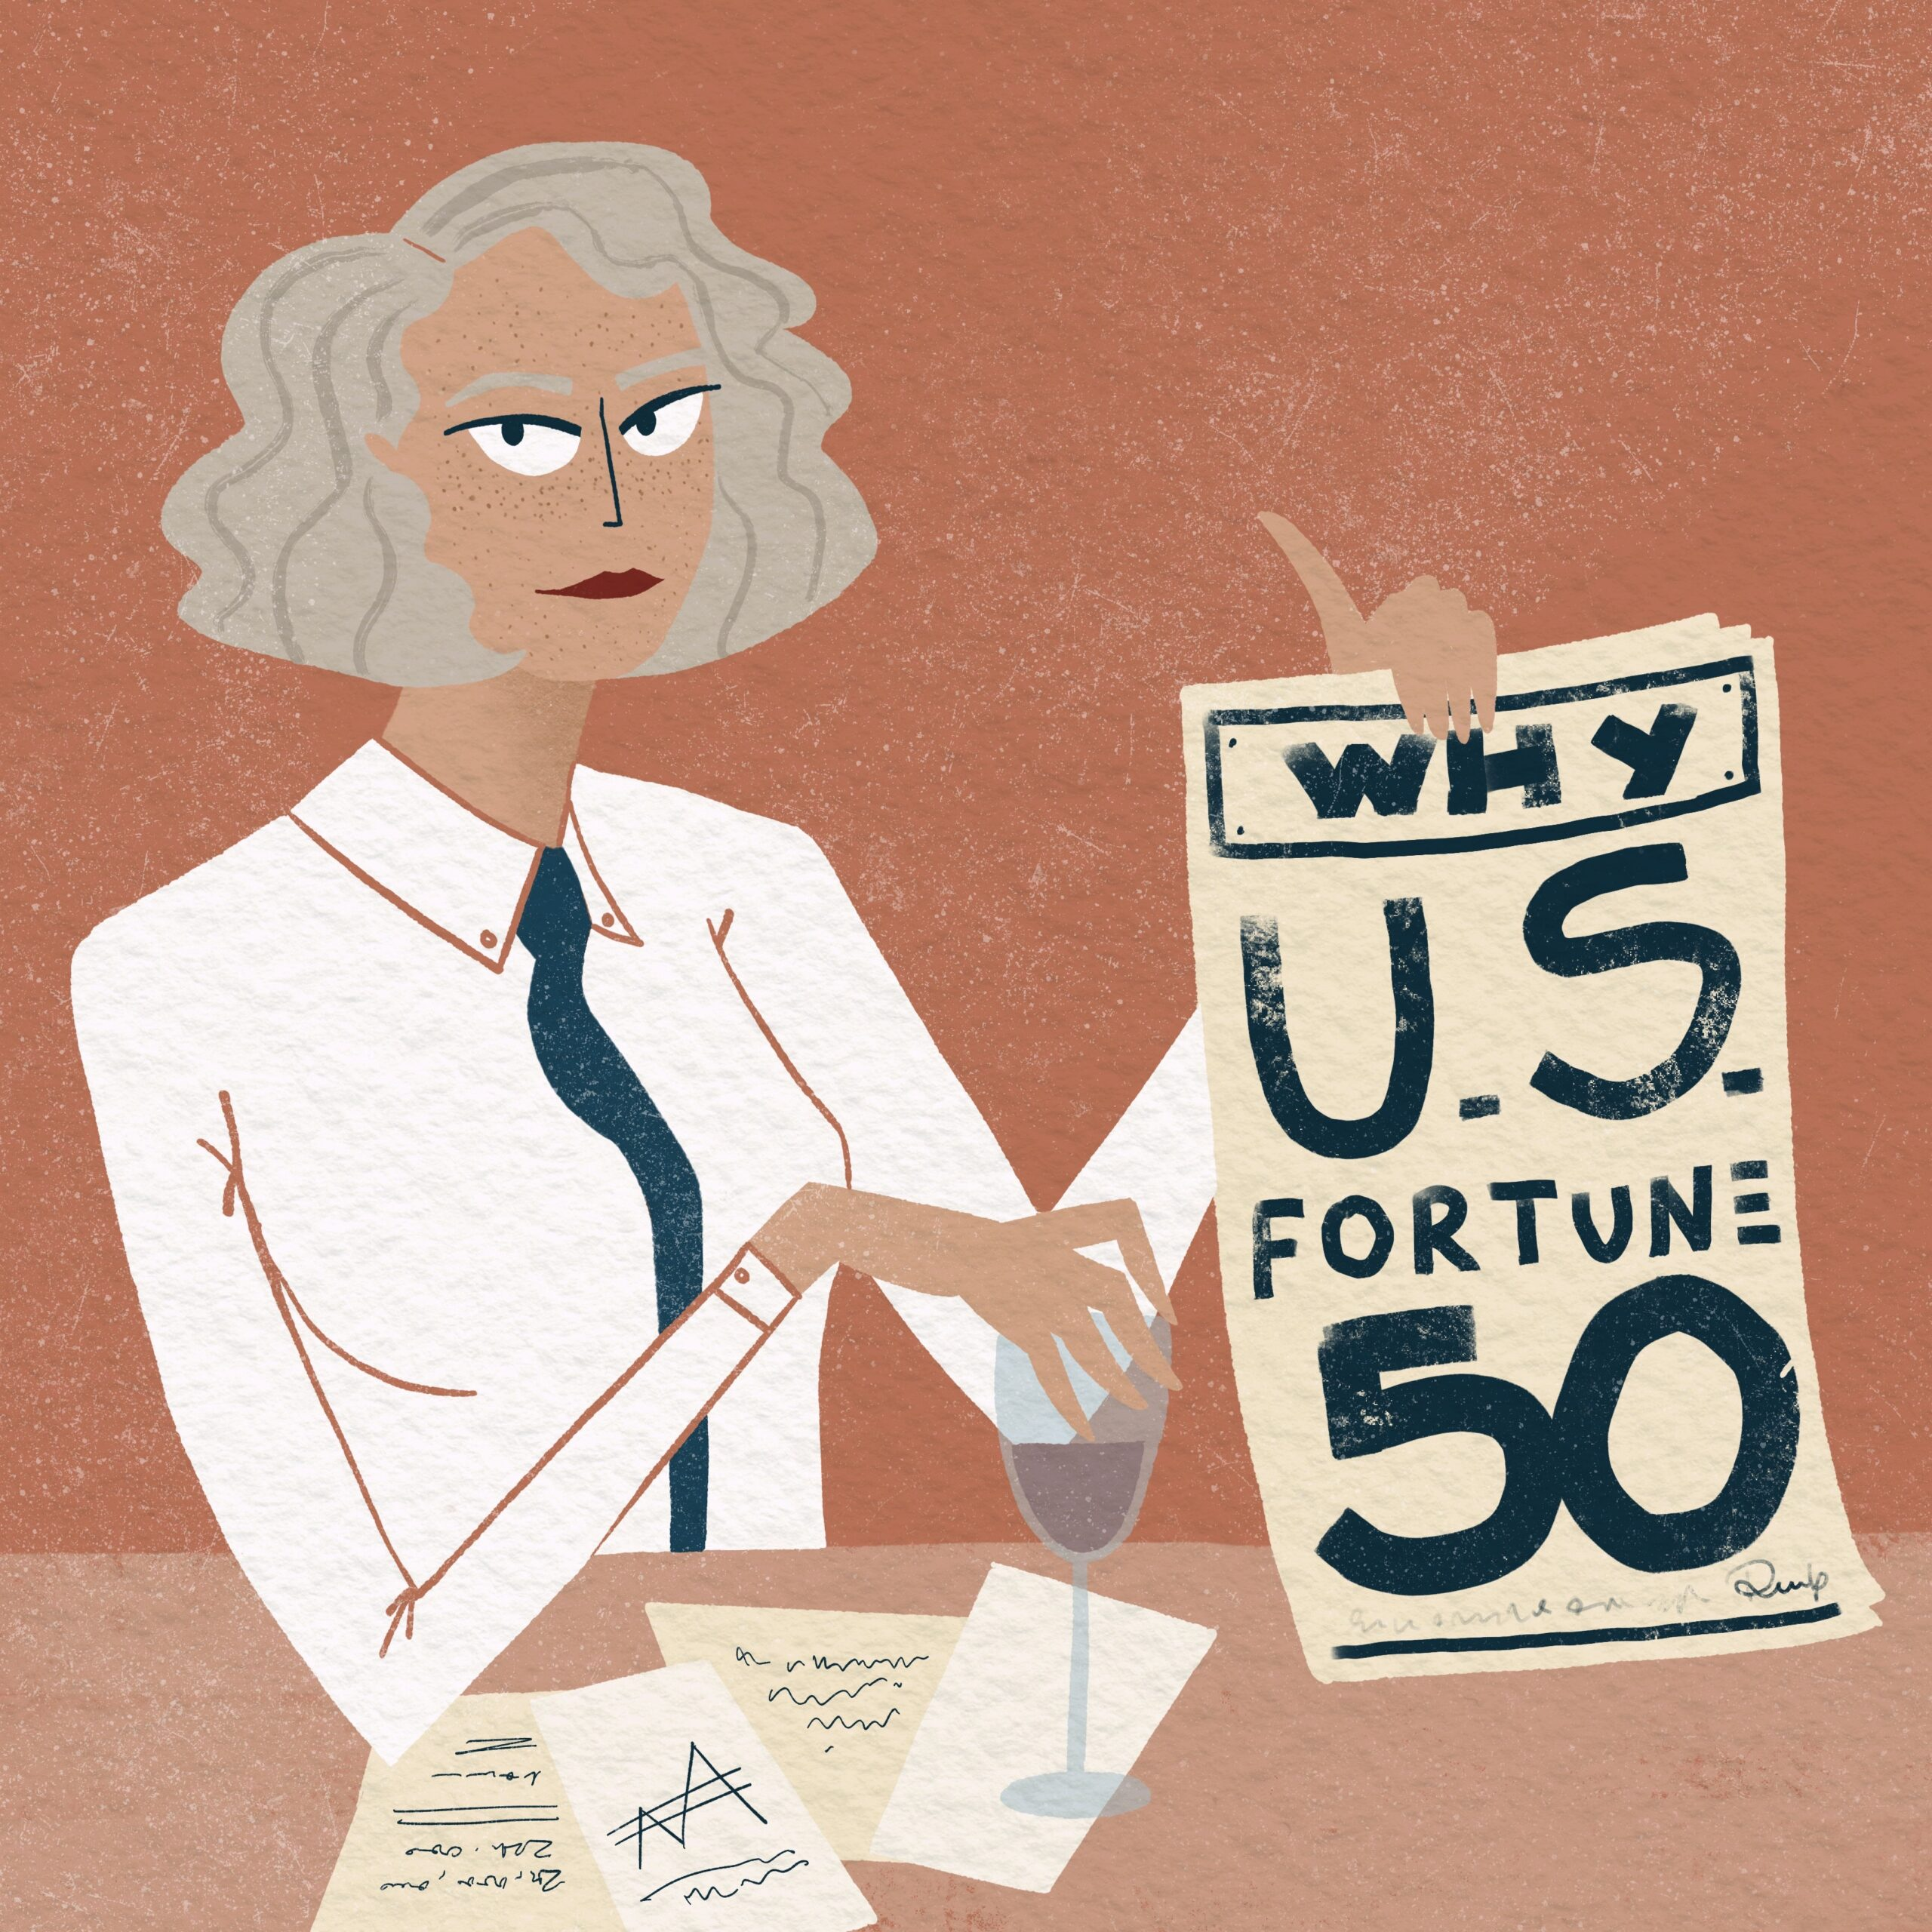 What about women designers in the C-suite of large corporations?